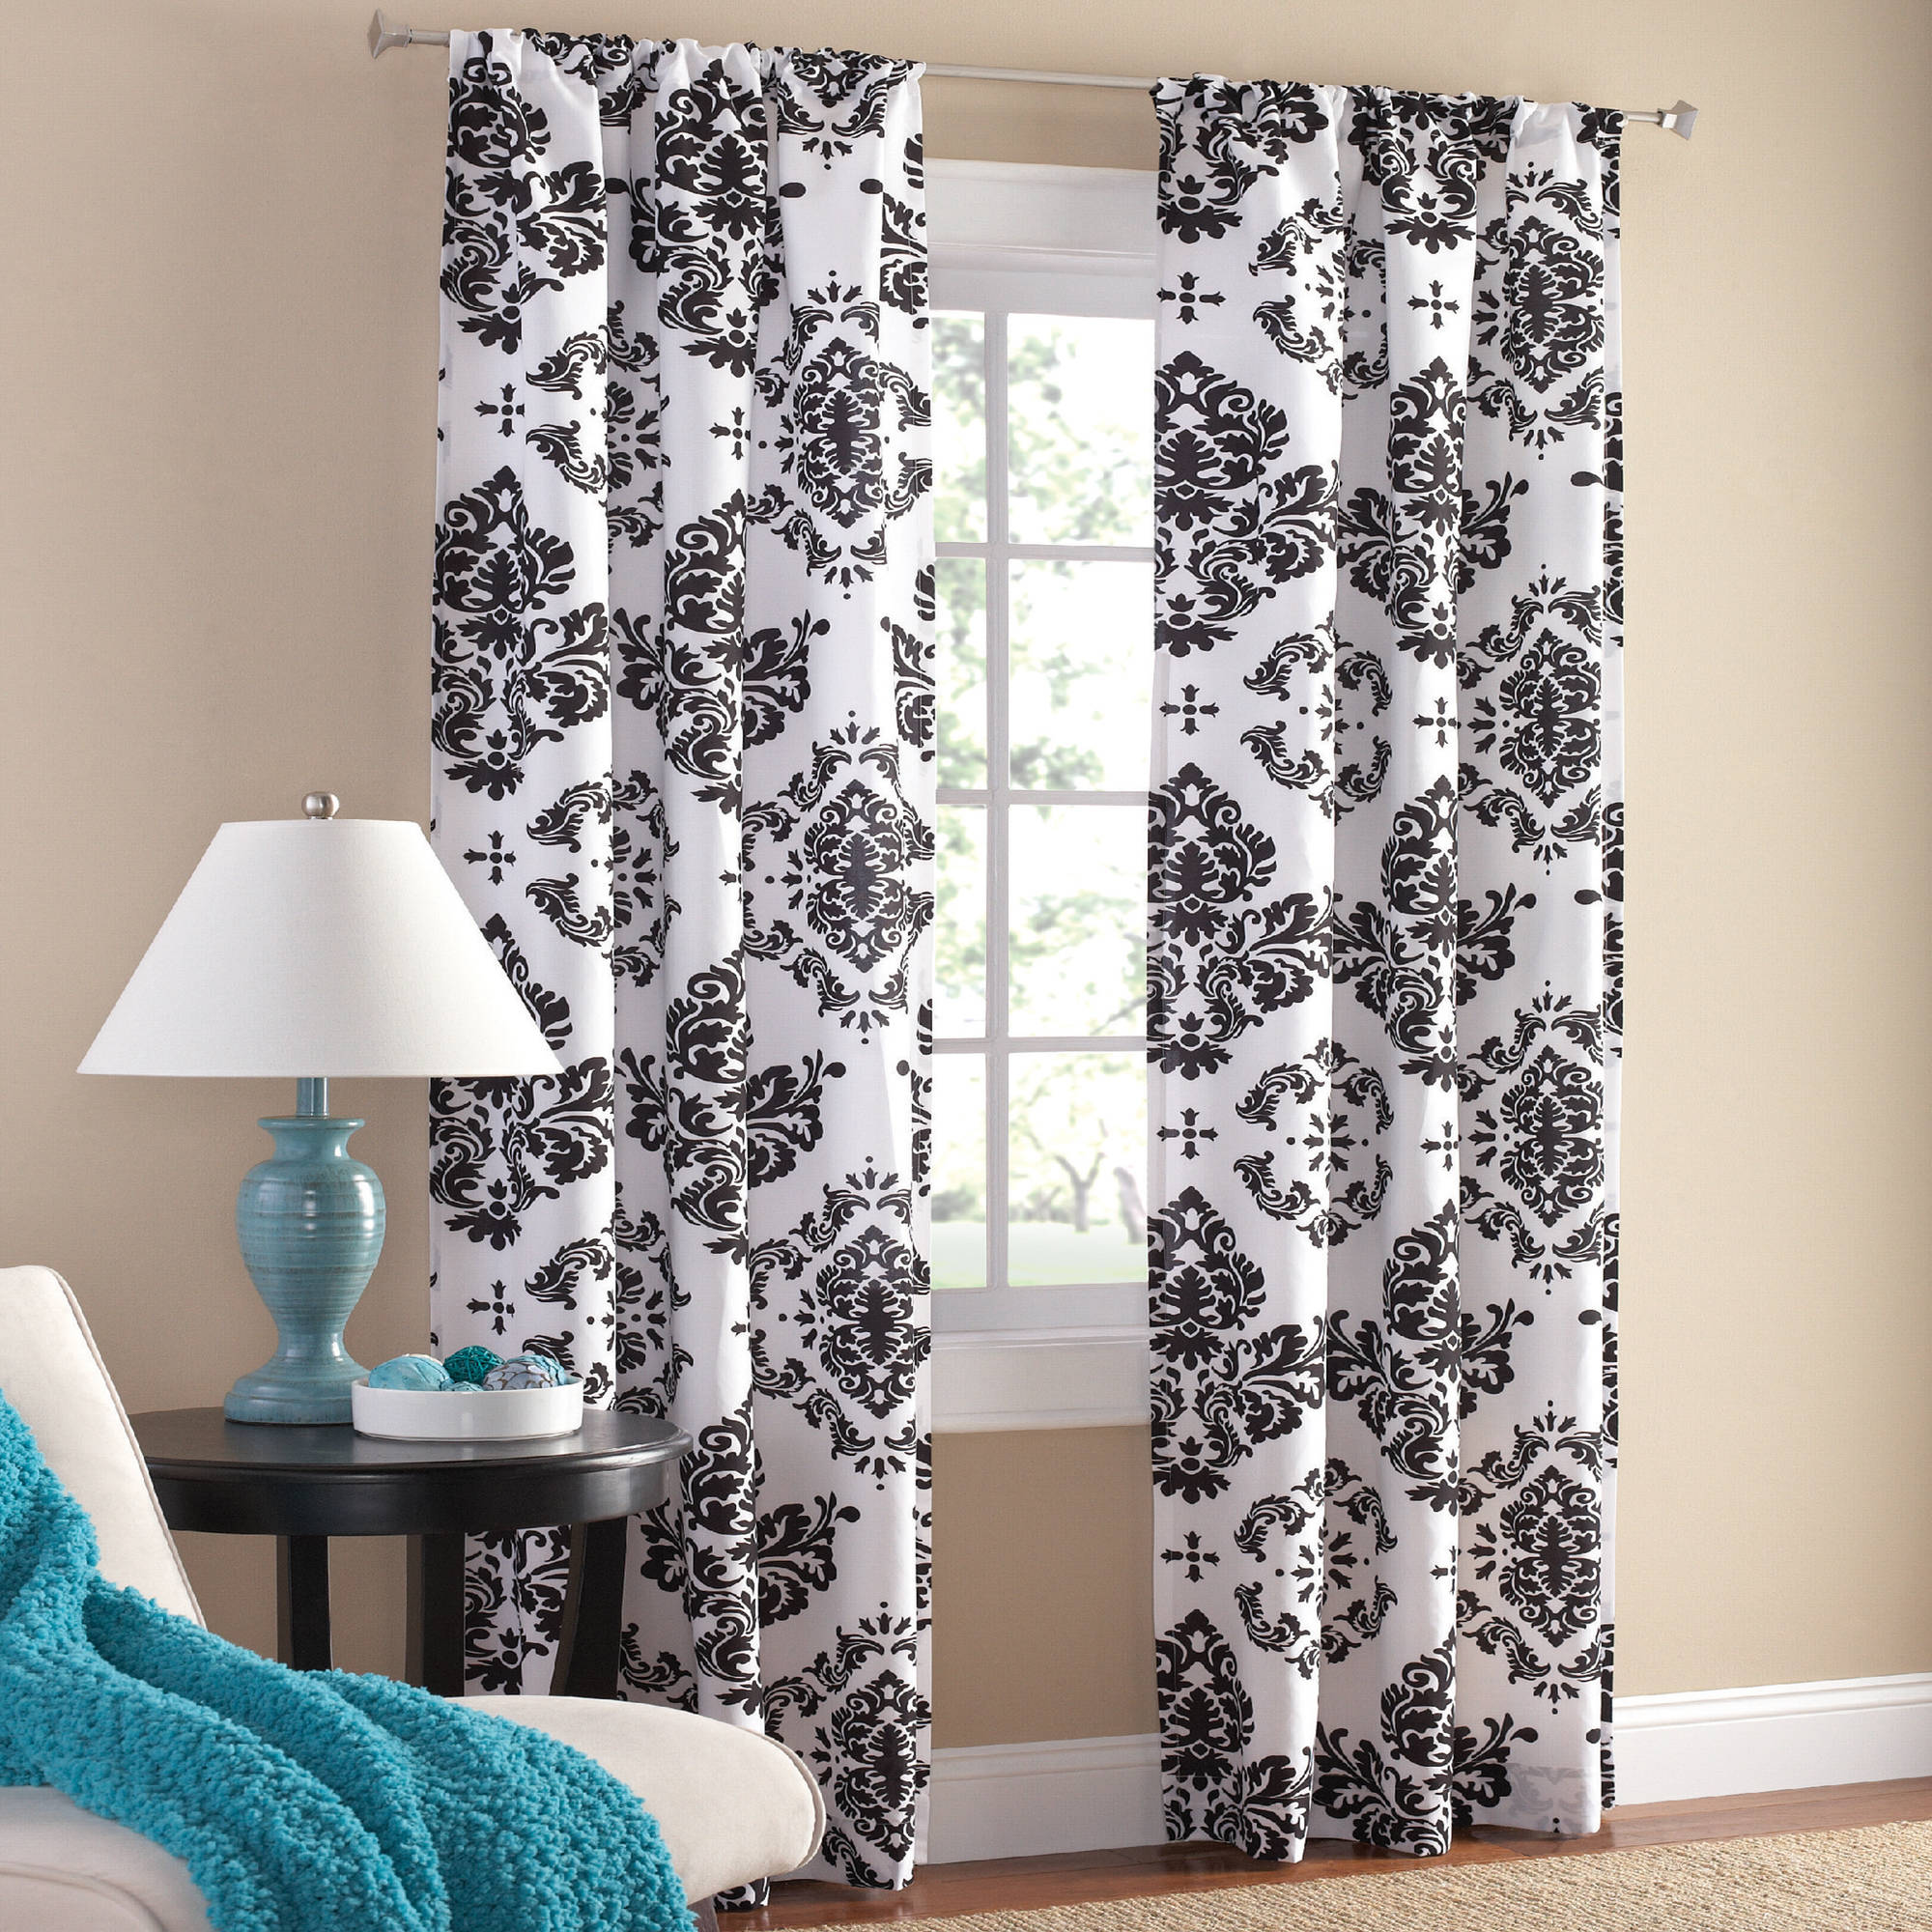 VCNY Home Aria Jacquard Grommet Top Window Curtain Panel Multiple Colors And Sizes